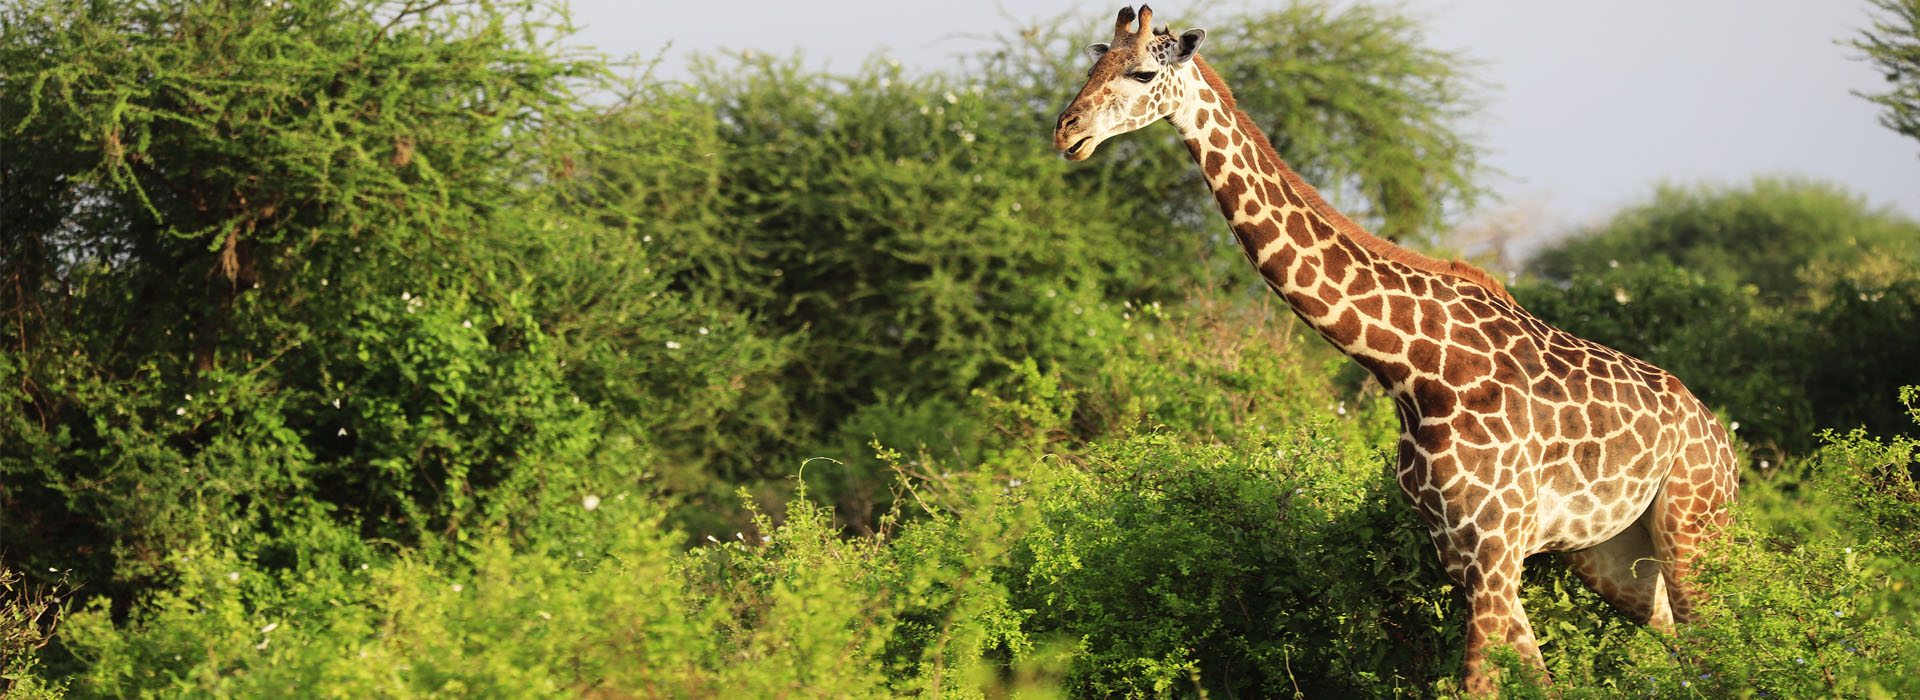 Amboseli Park Top Destinations in Kenya - African Adventure Specialists